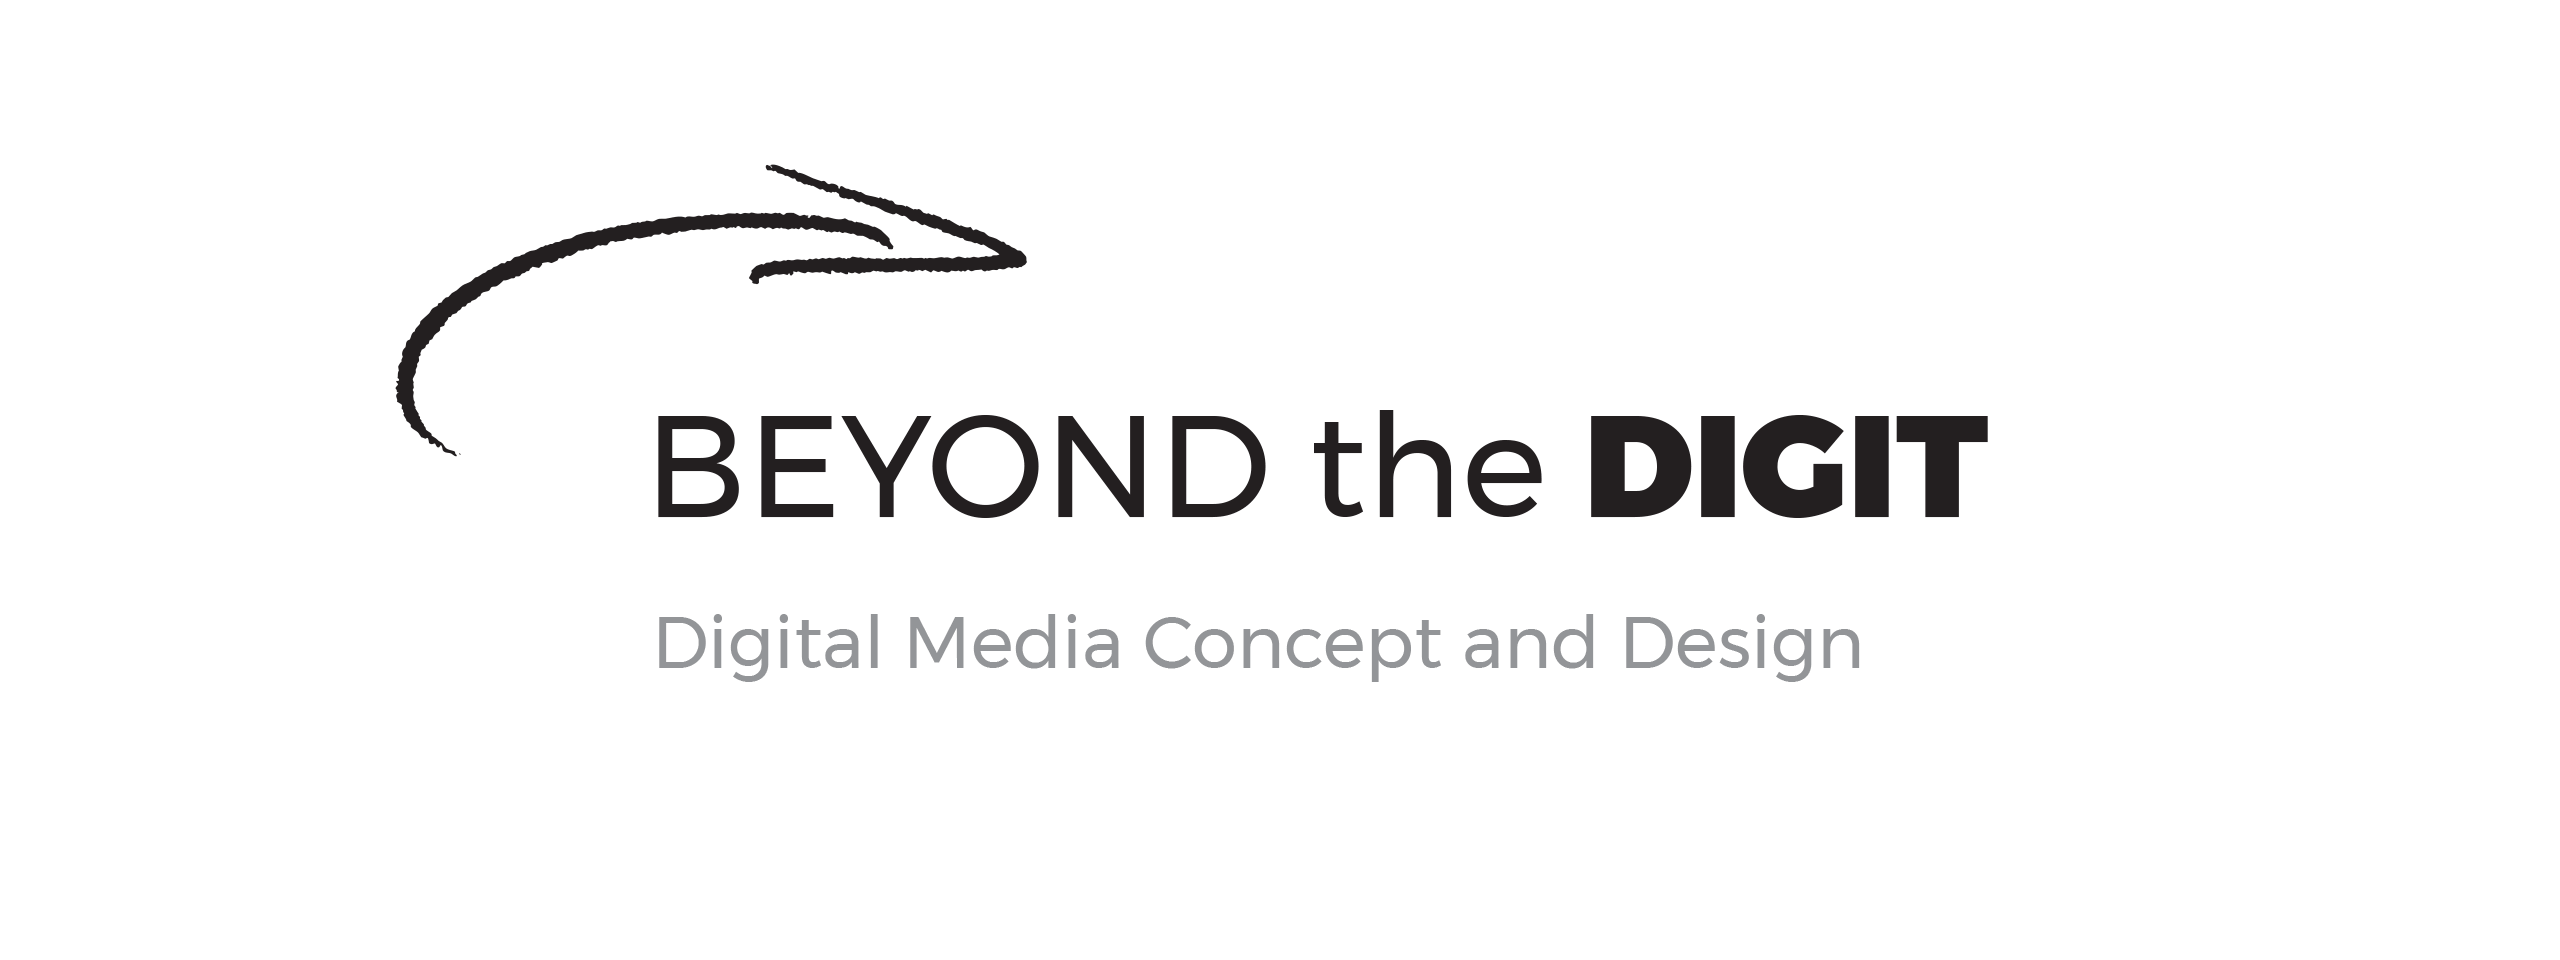 Beyond the Digit - Digital Media Concept and Design